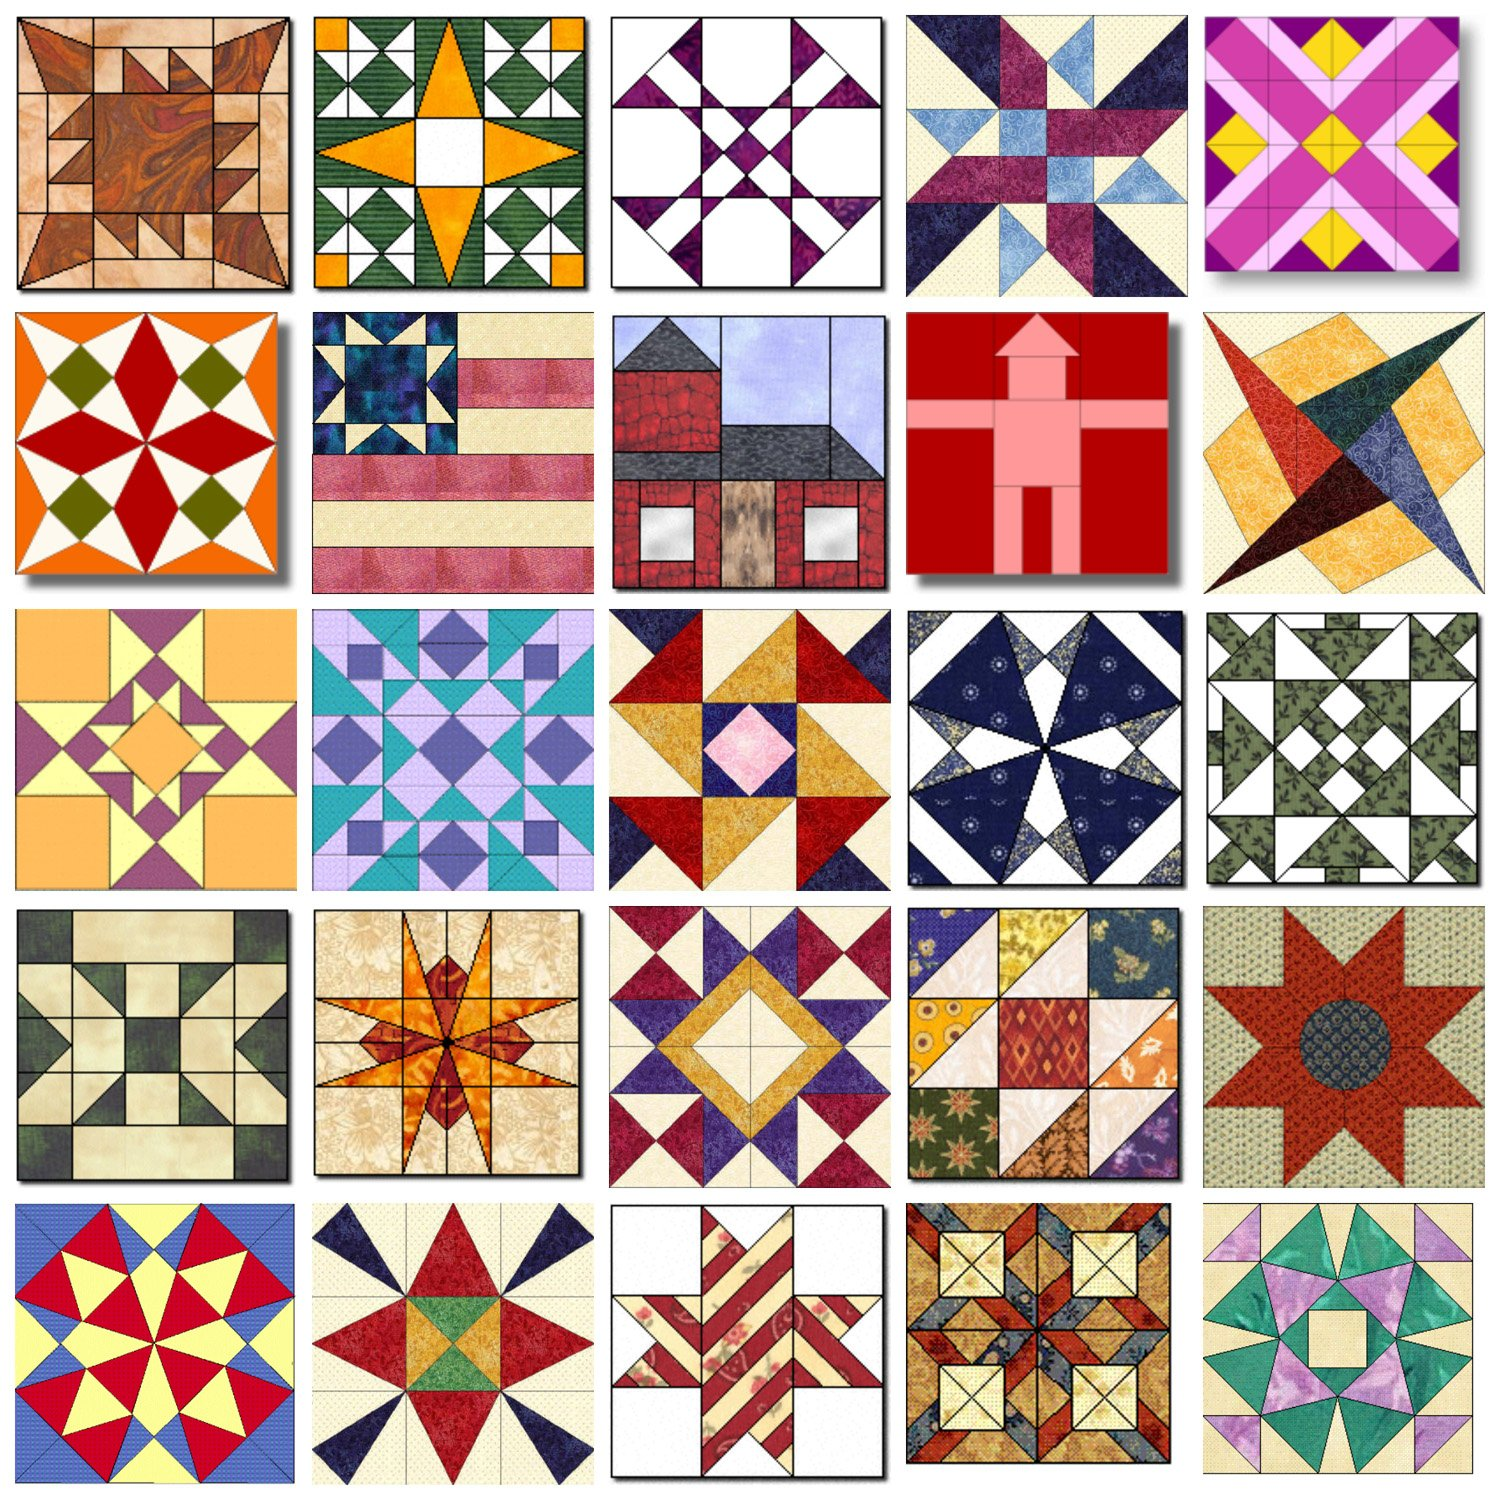 50 State Quilt Block Patterns Fairfield World Blog